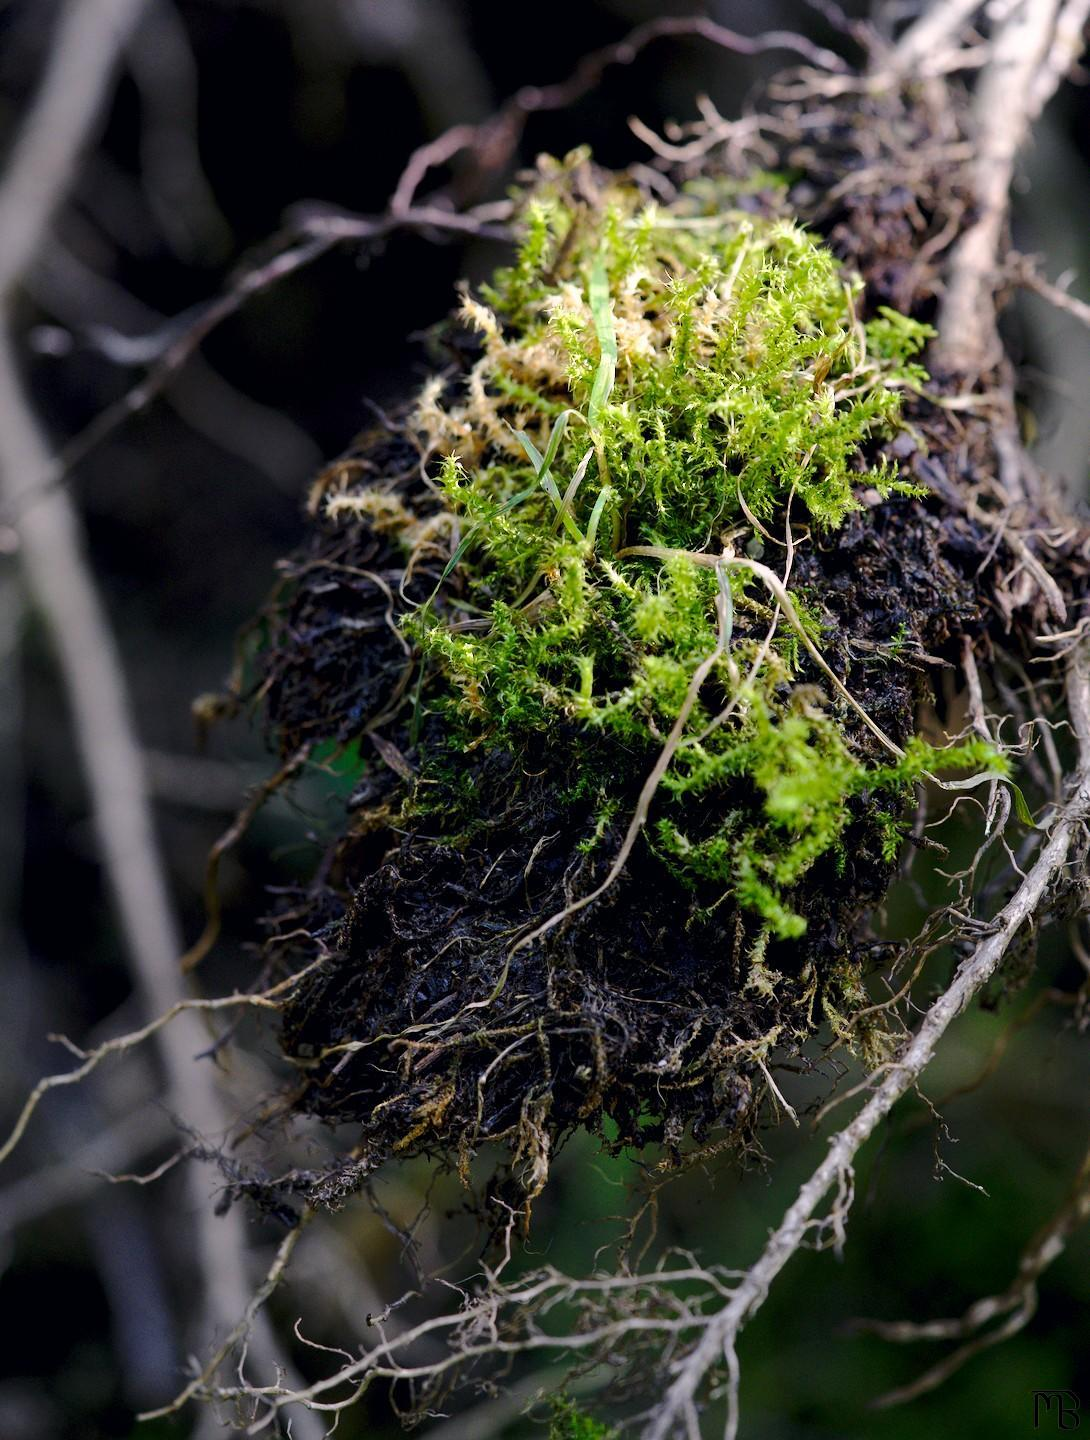 Moss on suspended dirt